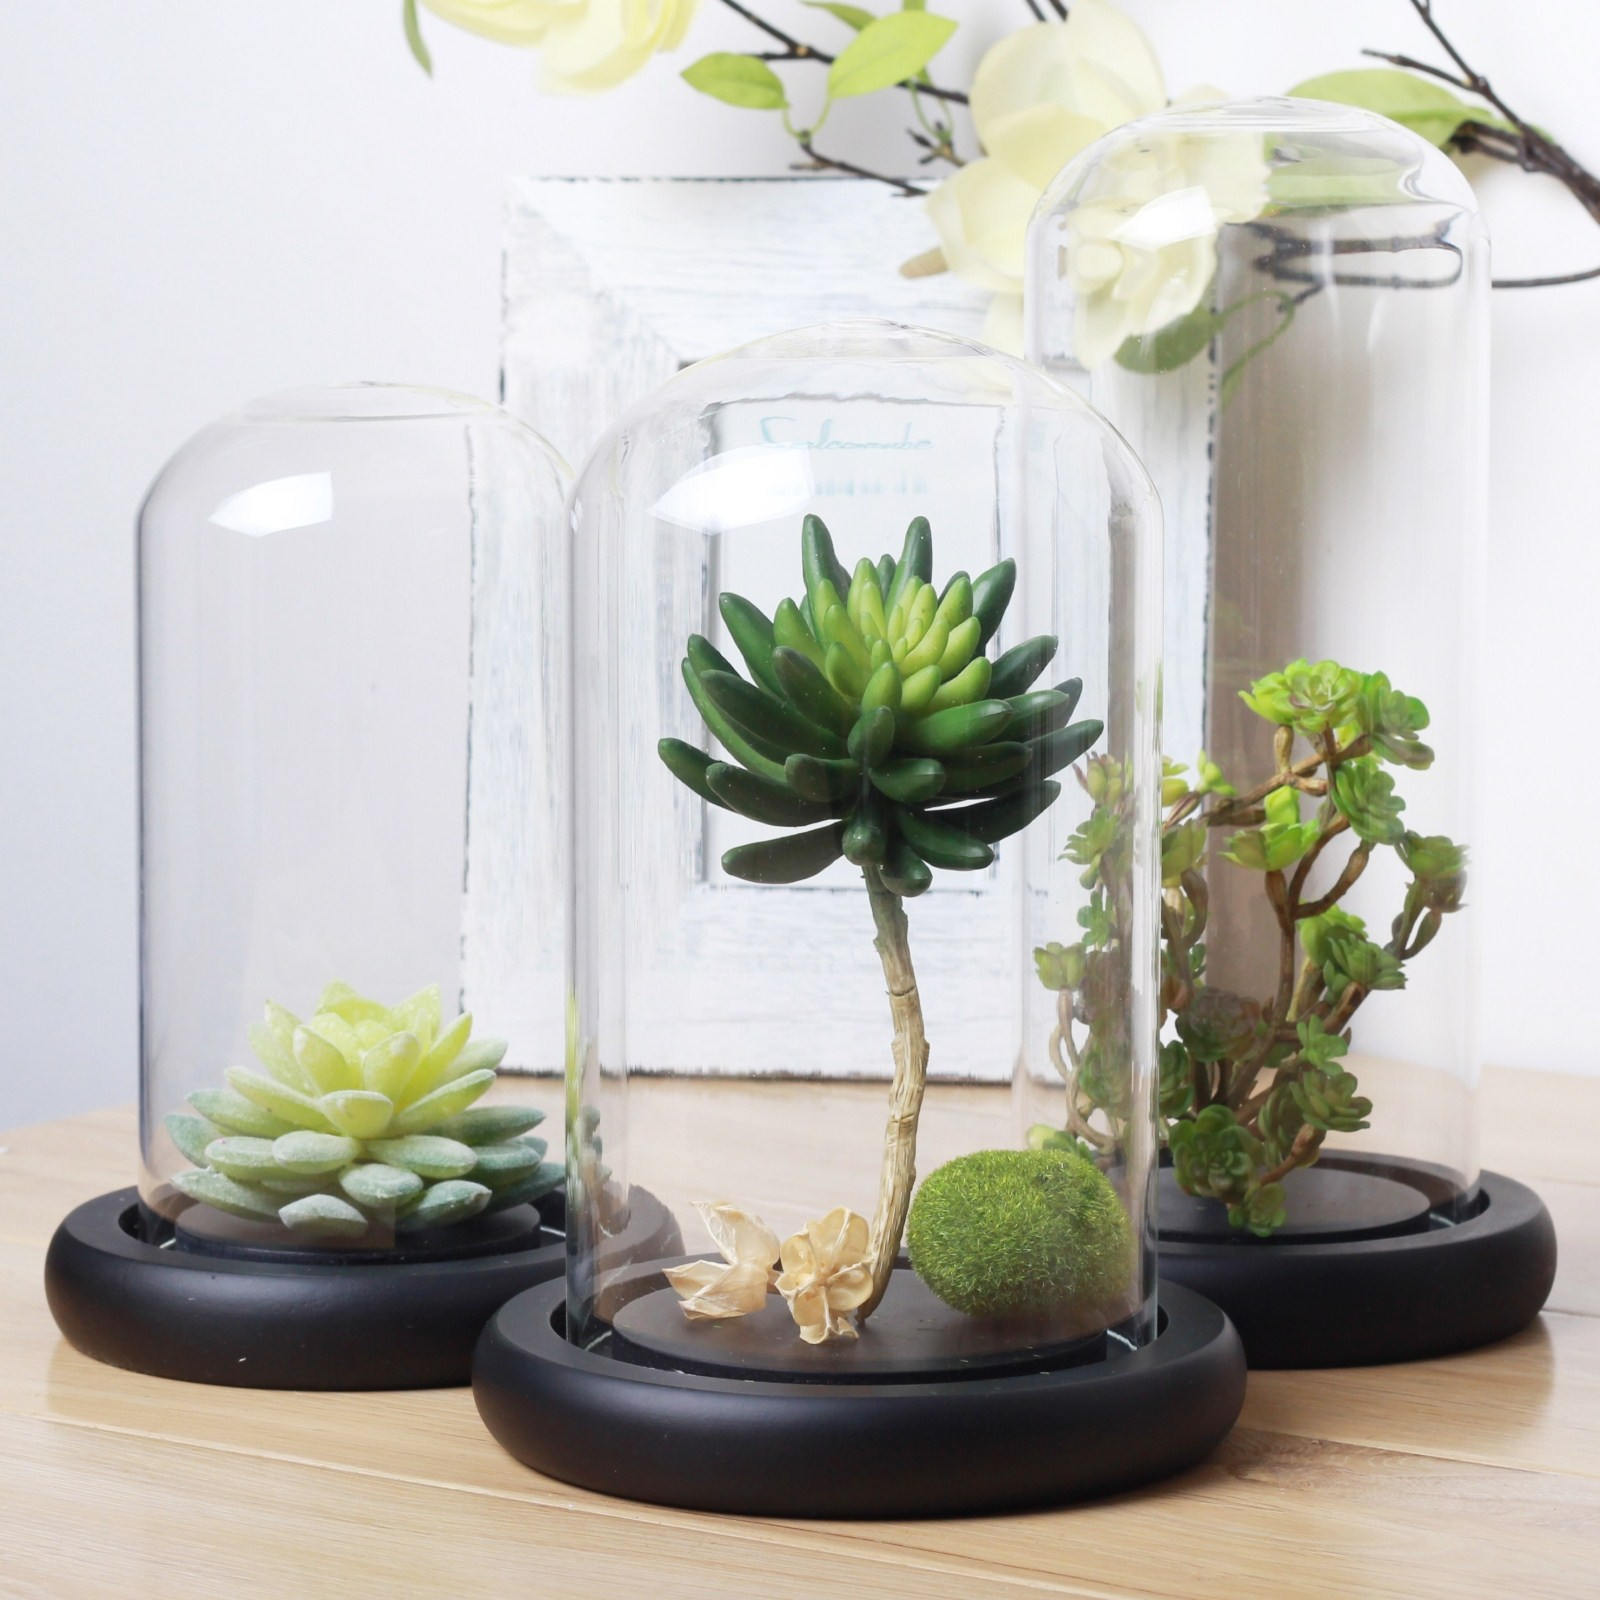 h j made bell jar glass cover without knob home decoration wedding decoration wholesale in vases. Black Bedroom Furniture Sets. Home Design Ideas